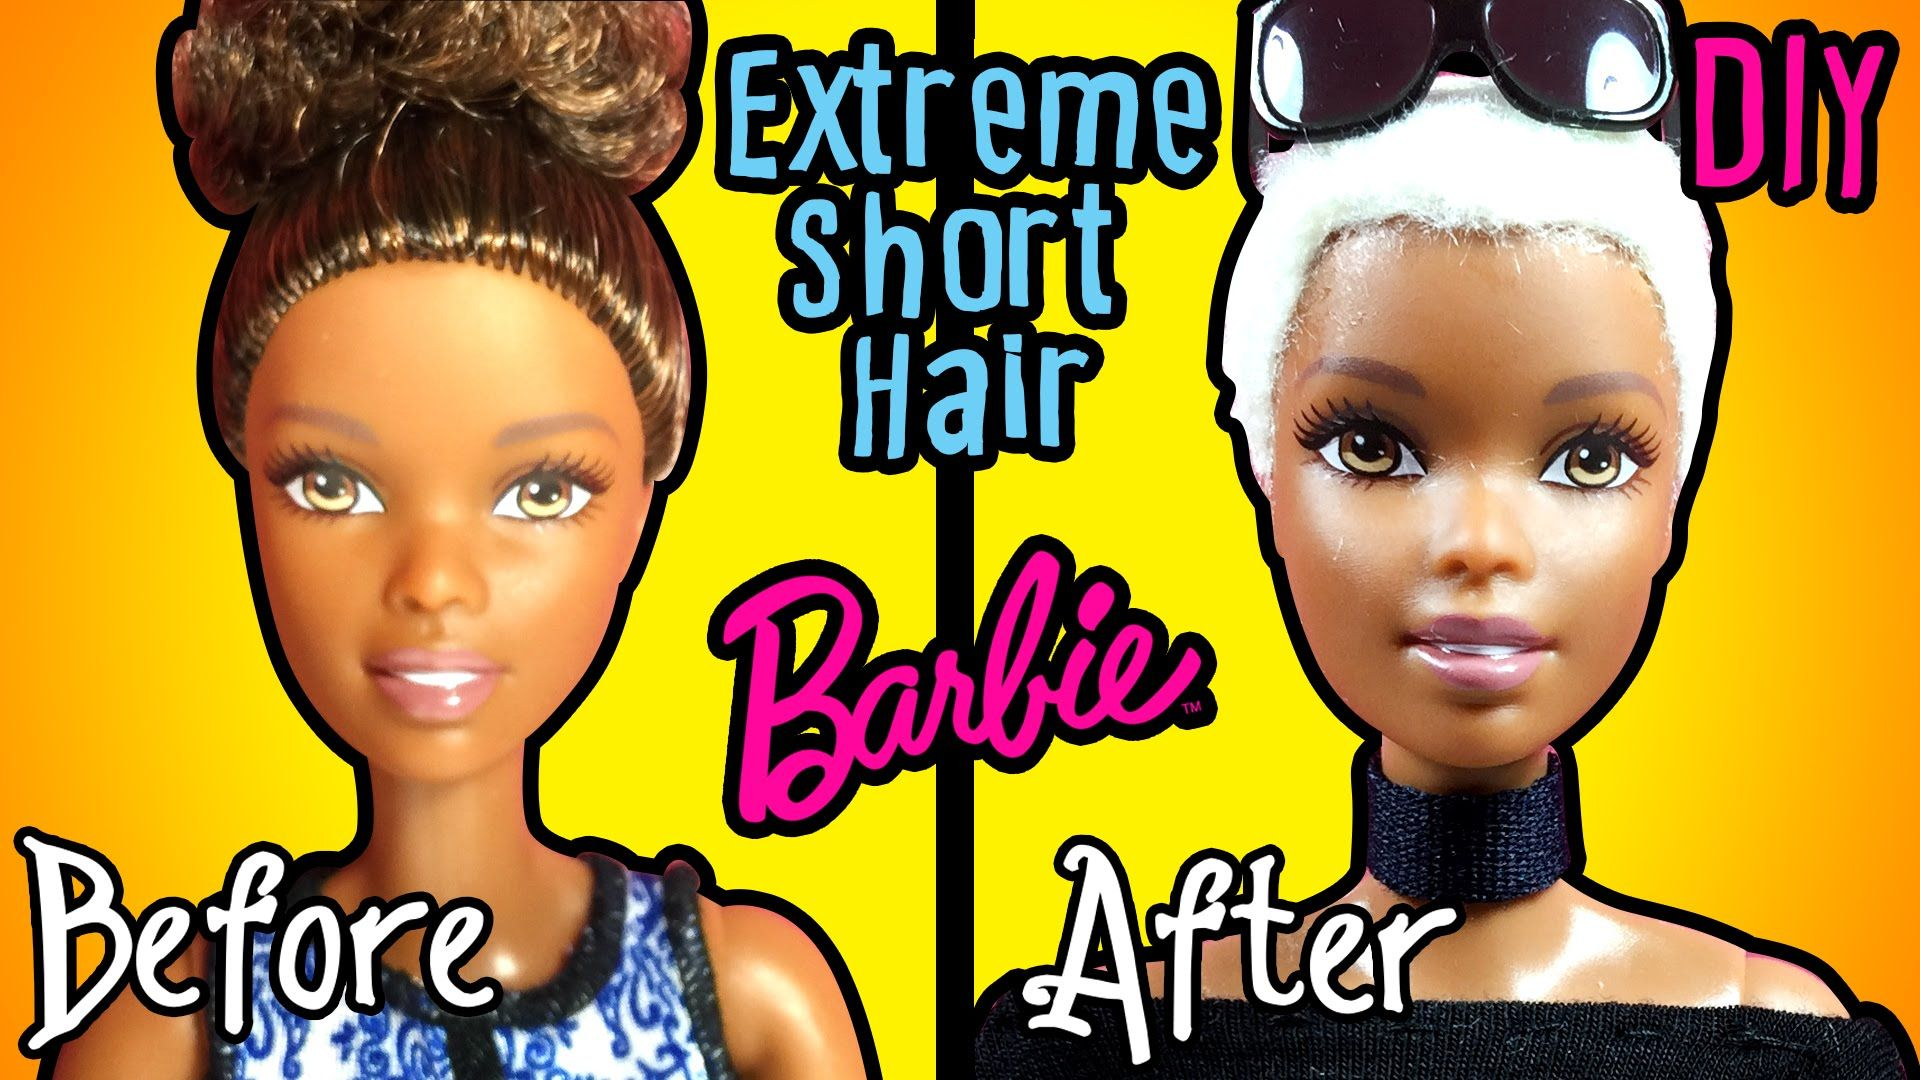 Barbie Hairstyles Amazing How To Cut Extreme Short Haircut For Barbie Doll  Diy Doll Hair